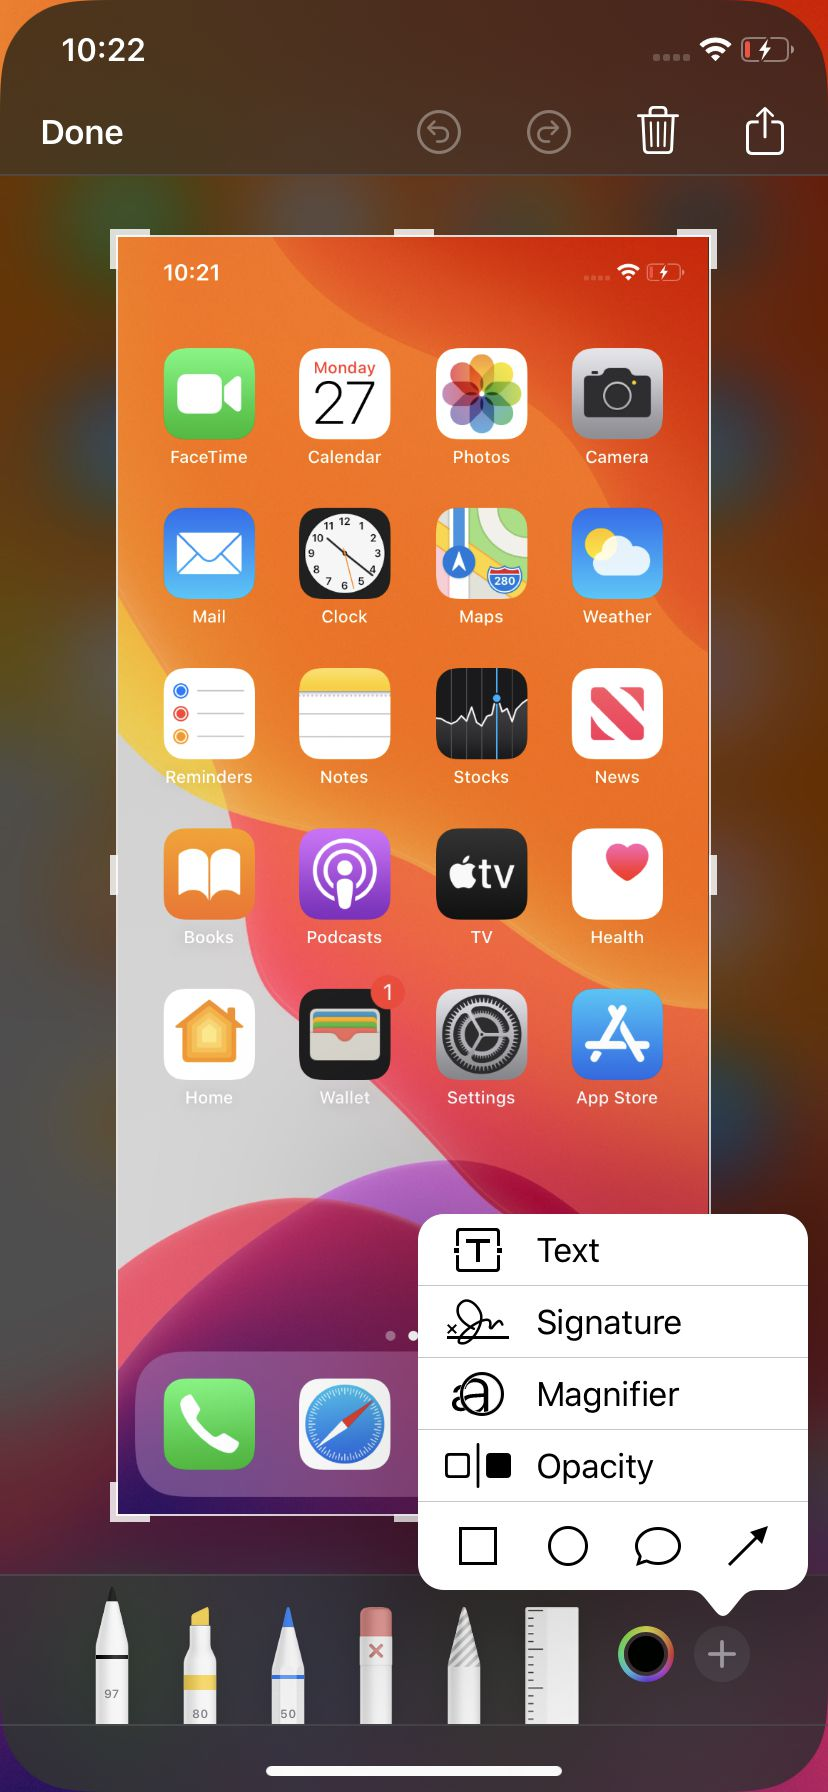 After taking a screenshot on your iPhone, you can edit it.